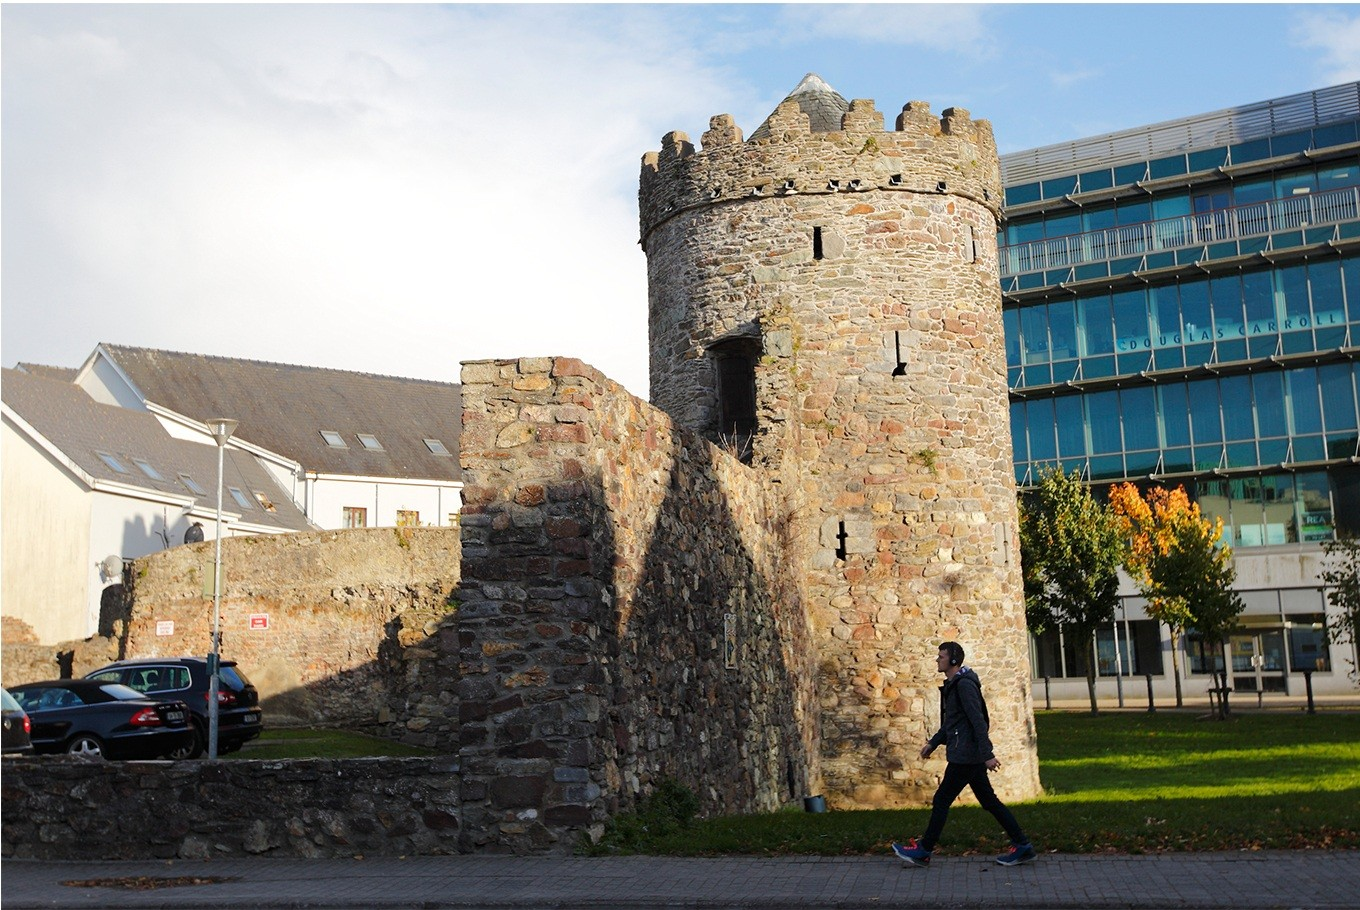 One of Waterford's medieval attractions.